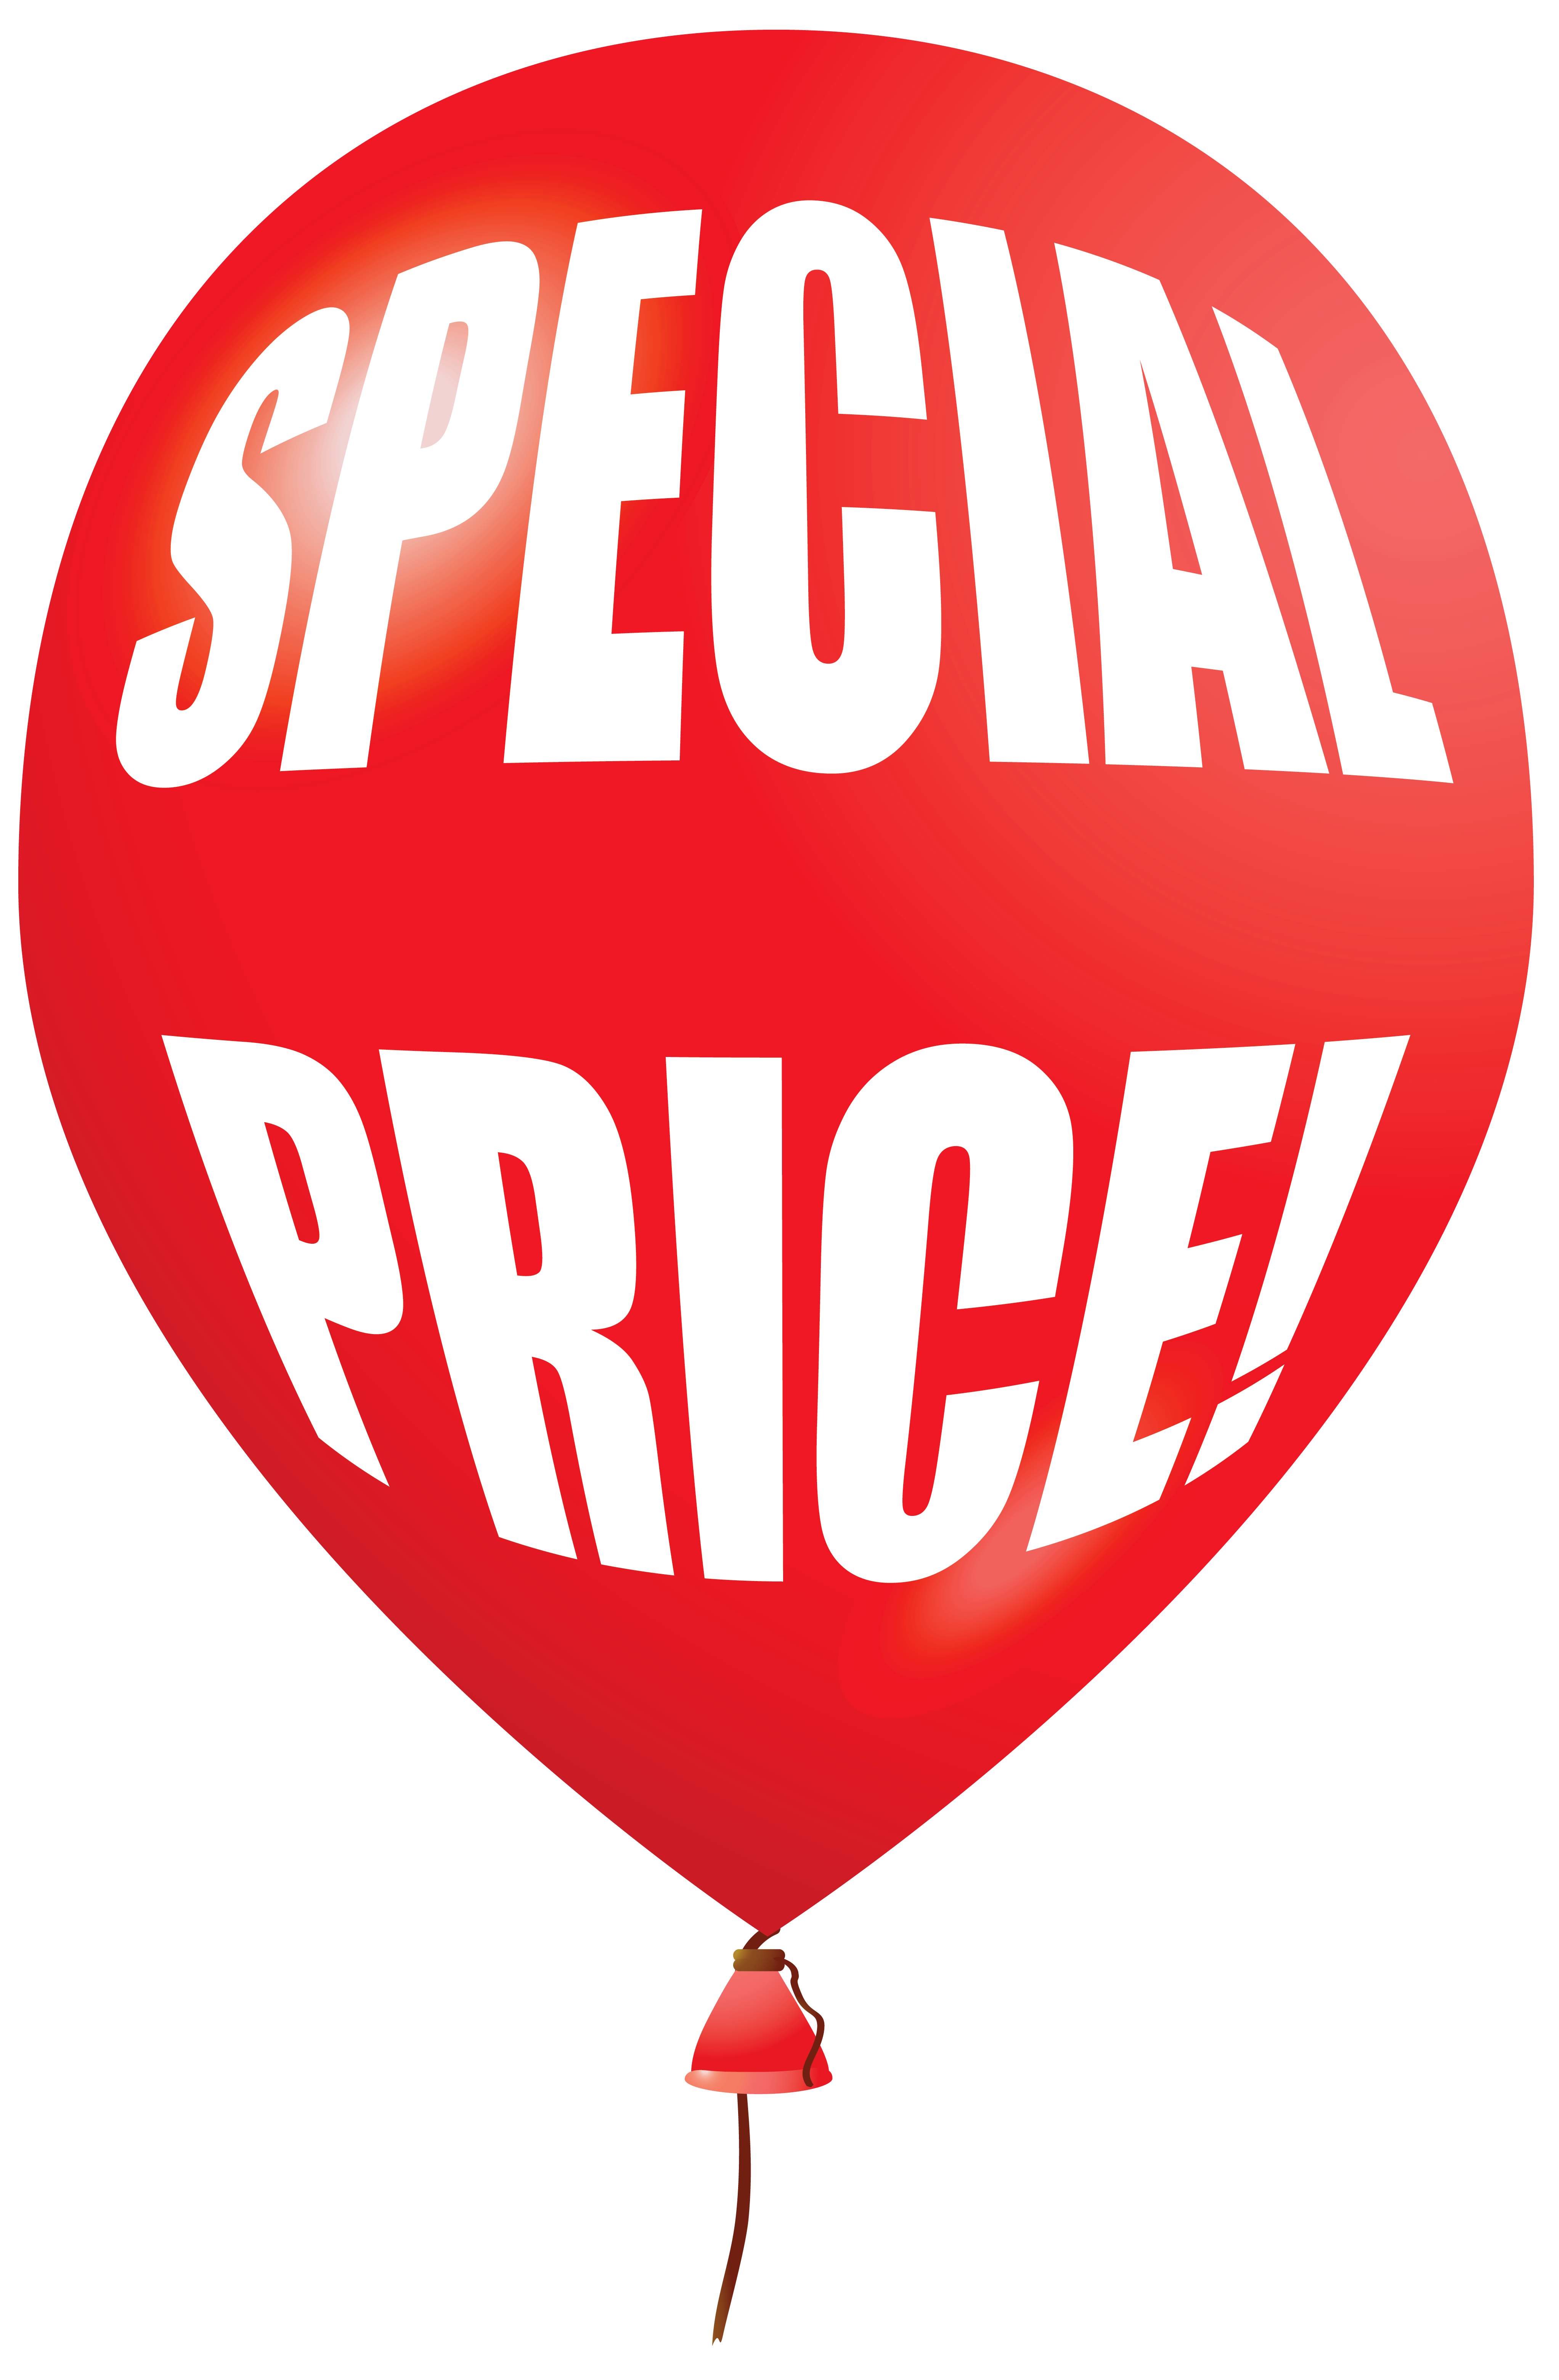 Sticker Facebook Price Special Balloon PNG File HD PNG Image